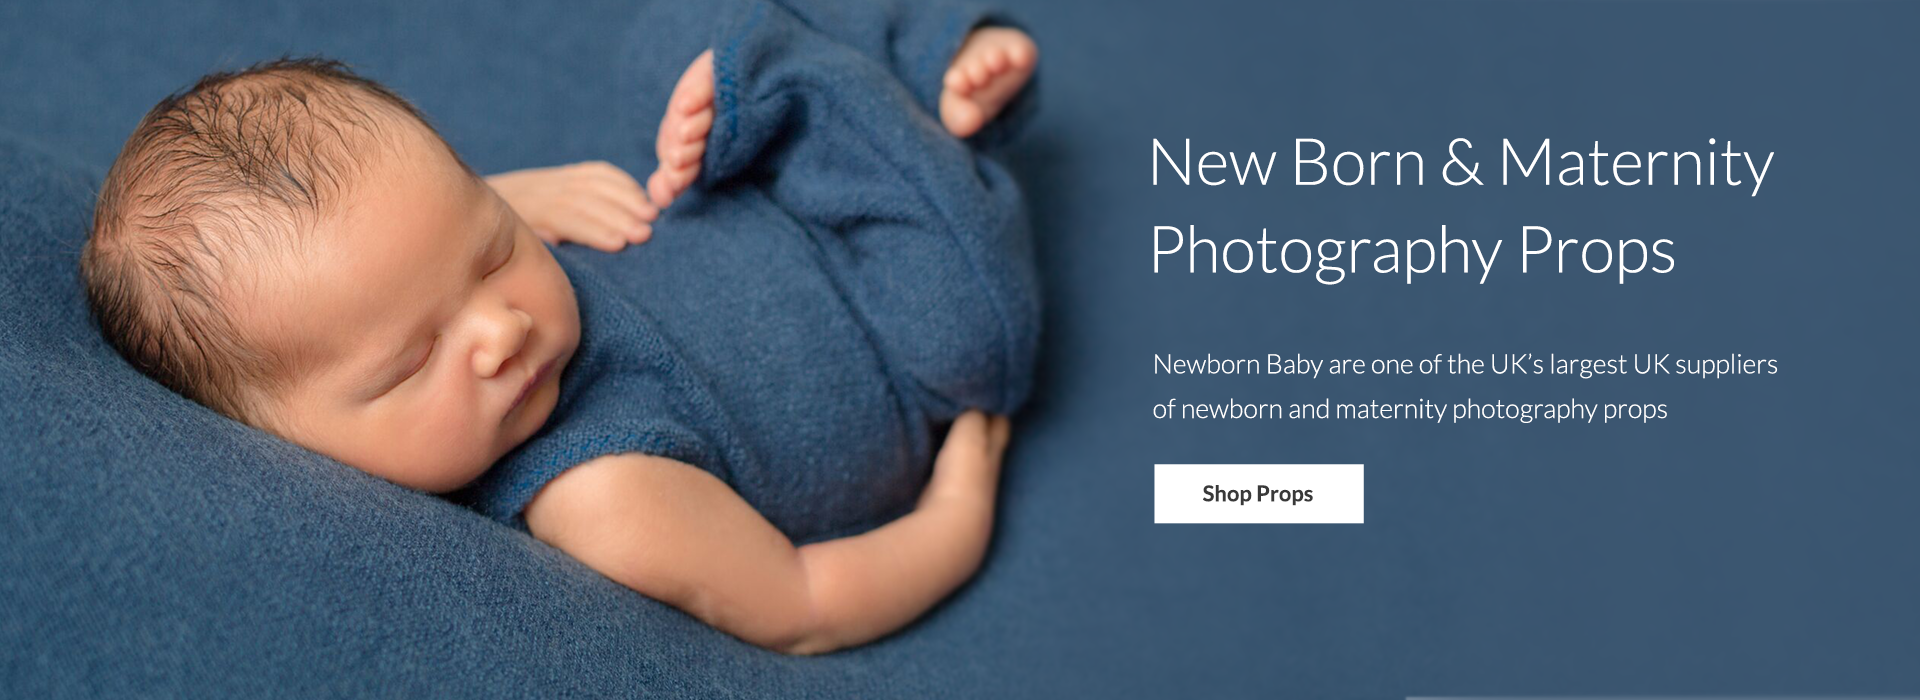 New Born & Maternity Photography Props